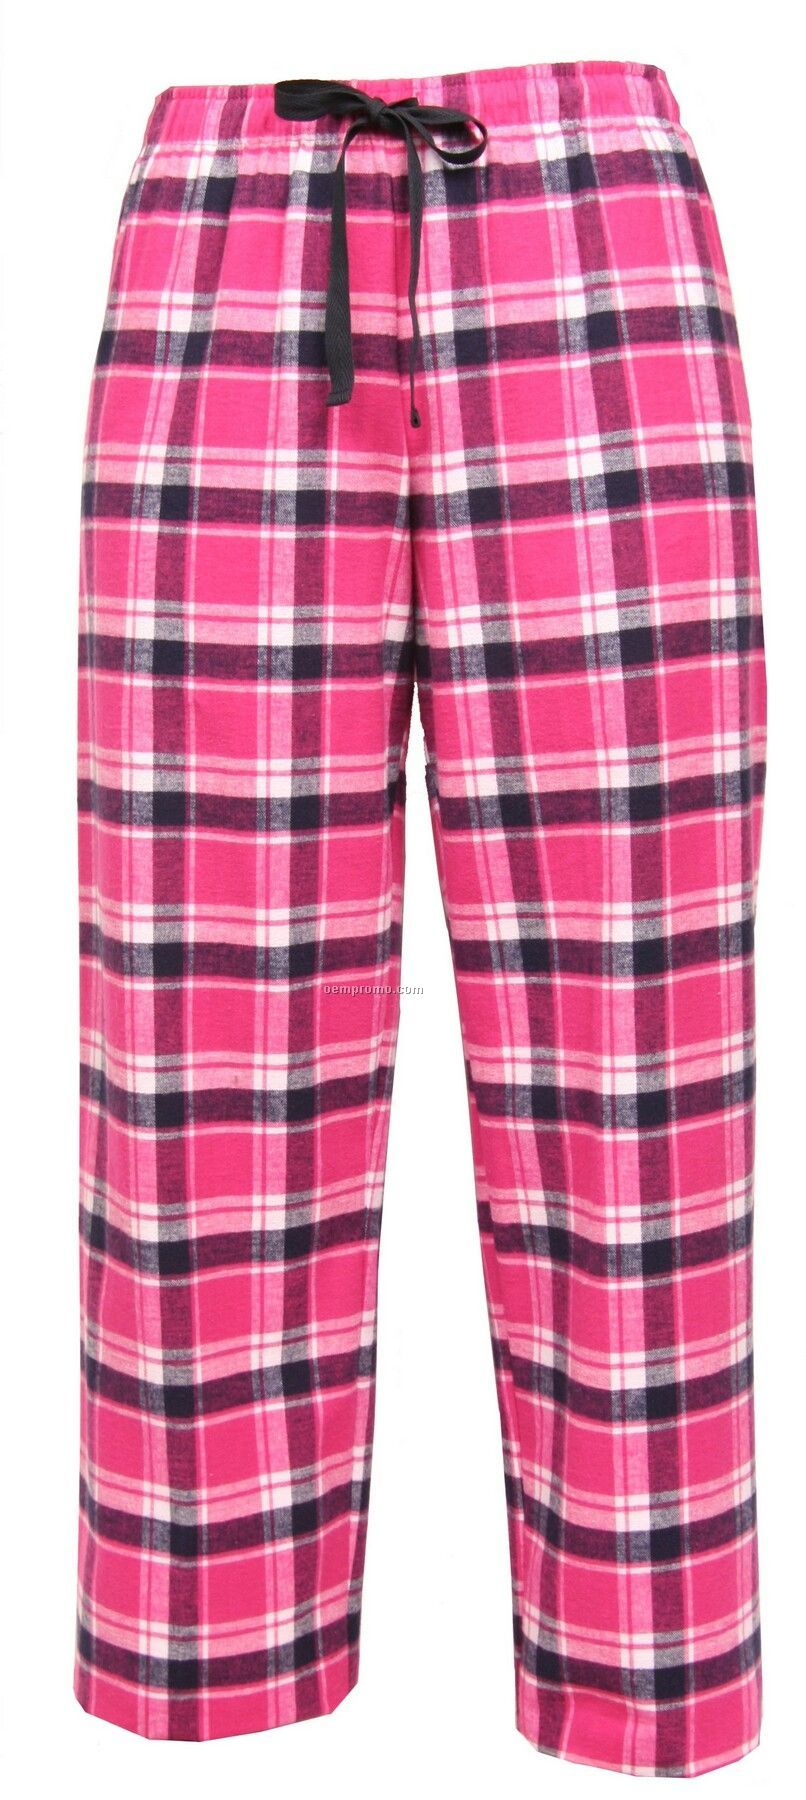 Youth Manhattan Plaid Fashion Flannel Pant With Tie Cord